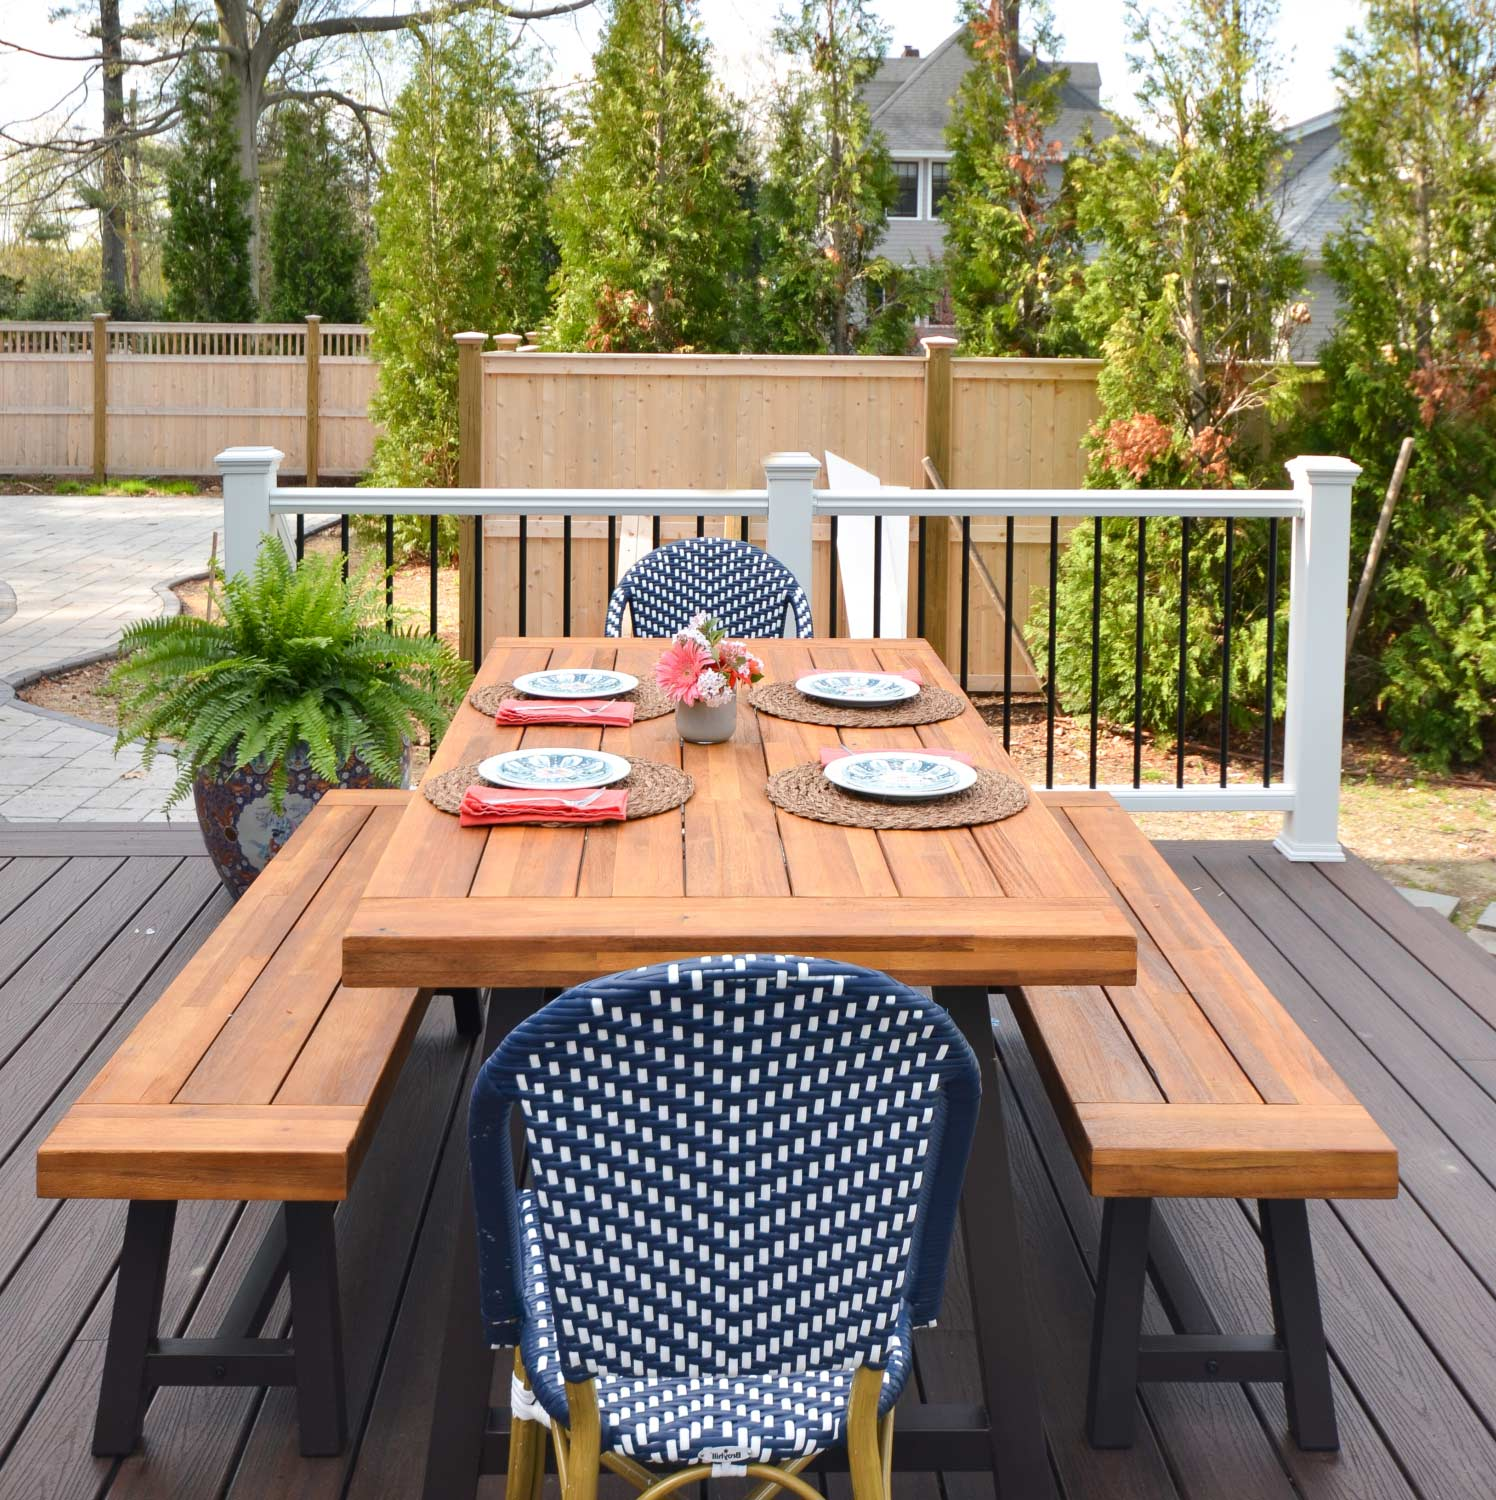 Buy Home Furniture: Joss And Main Outdoor Furniture Buying Guide